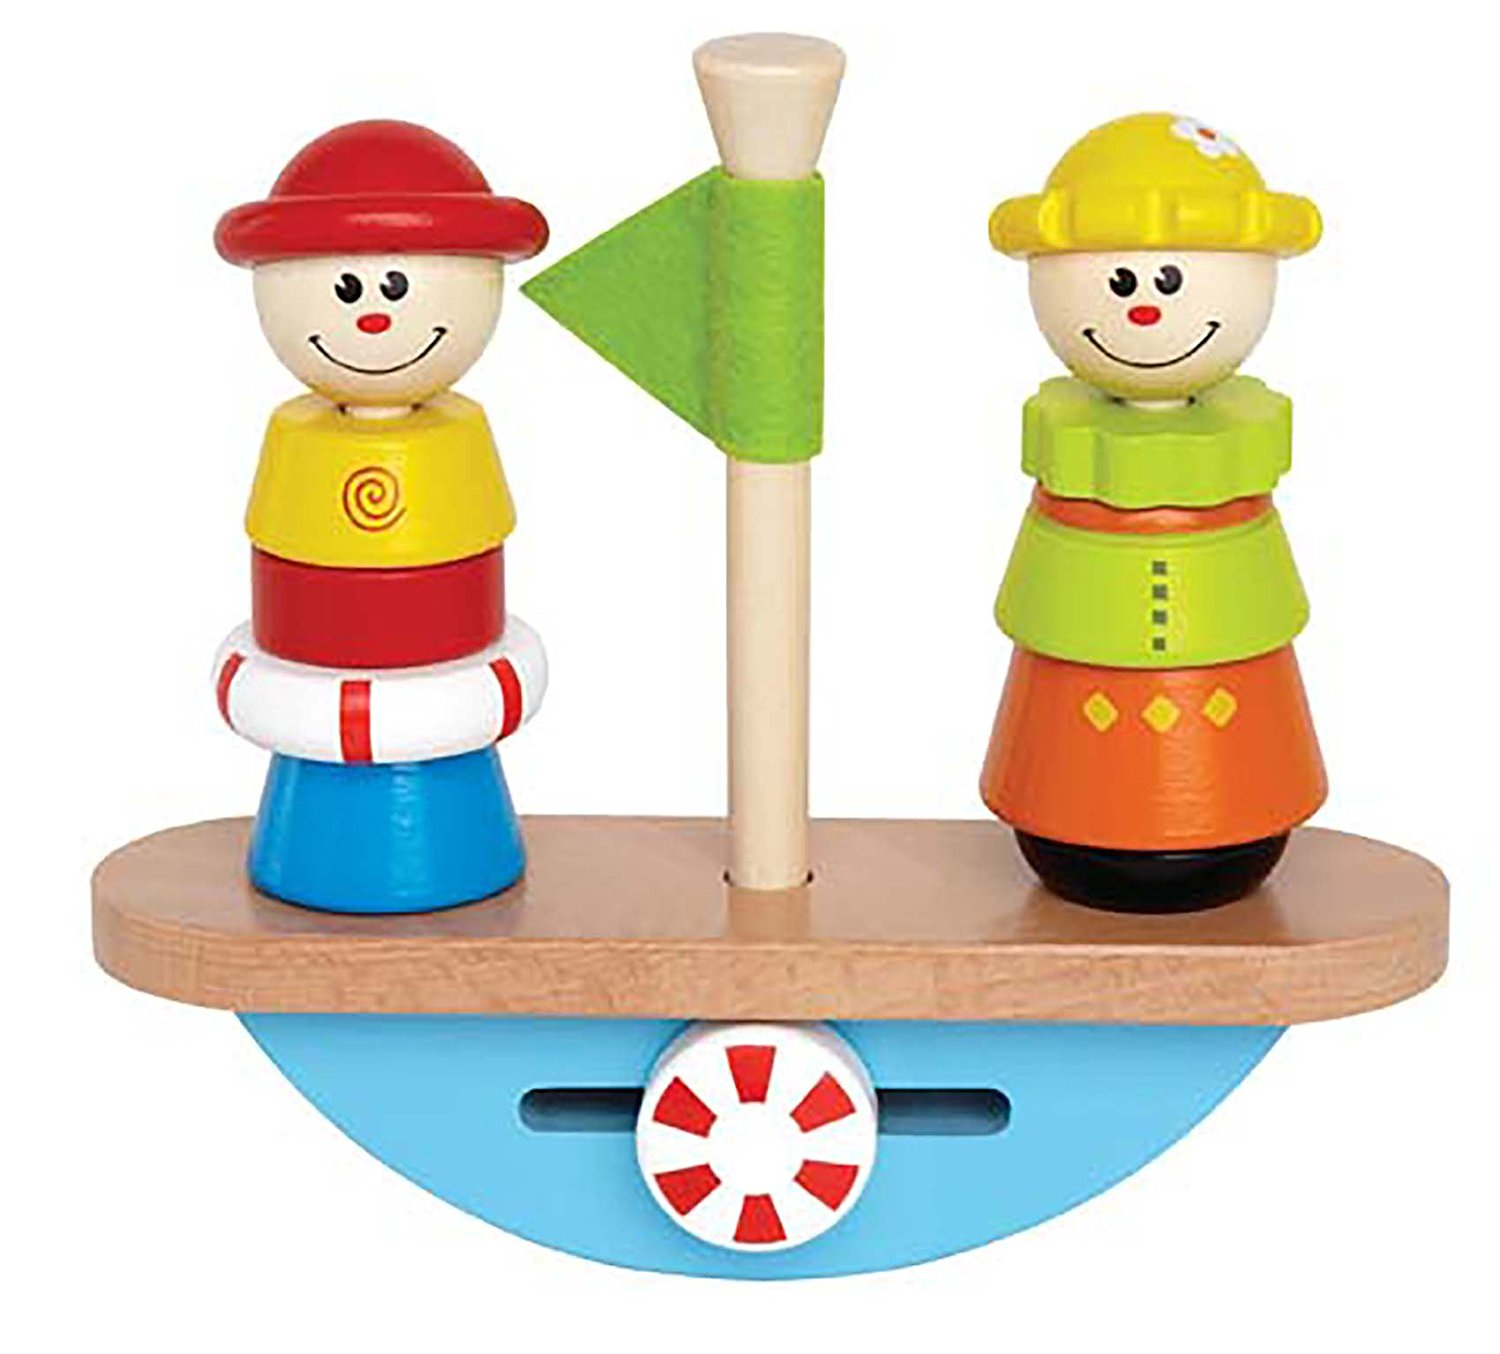 Balance Boat Toddler Wooden Stacking Toy By Hape